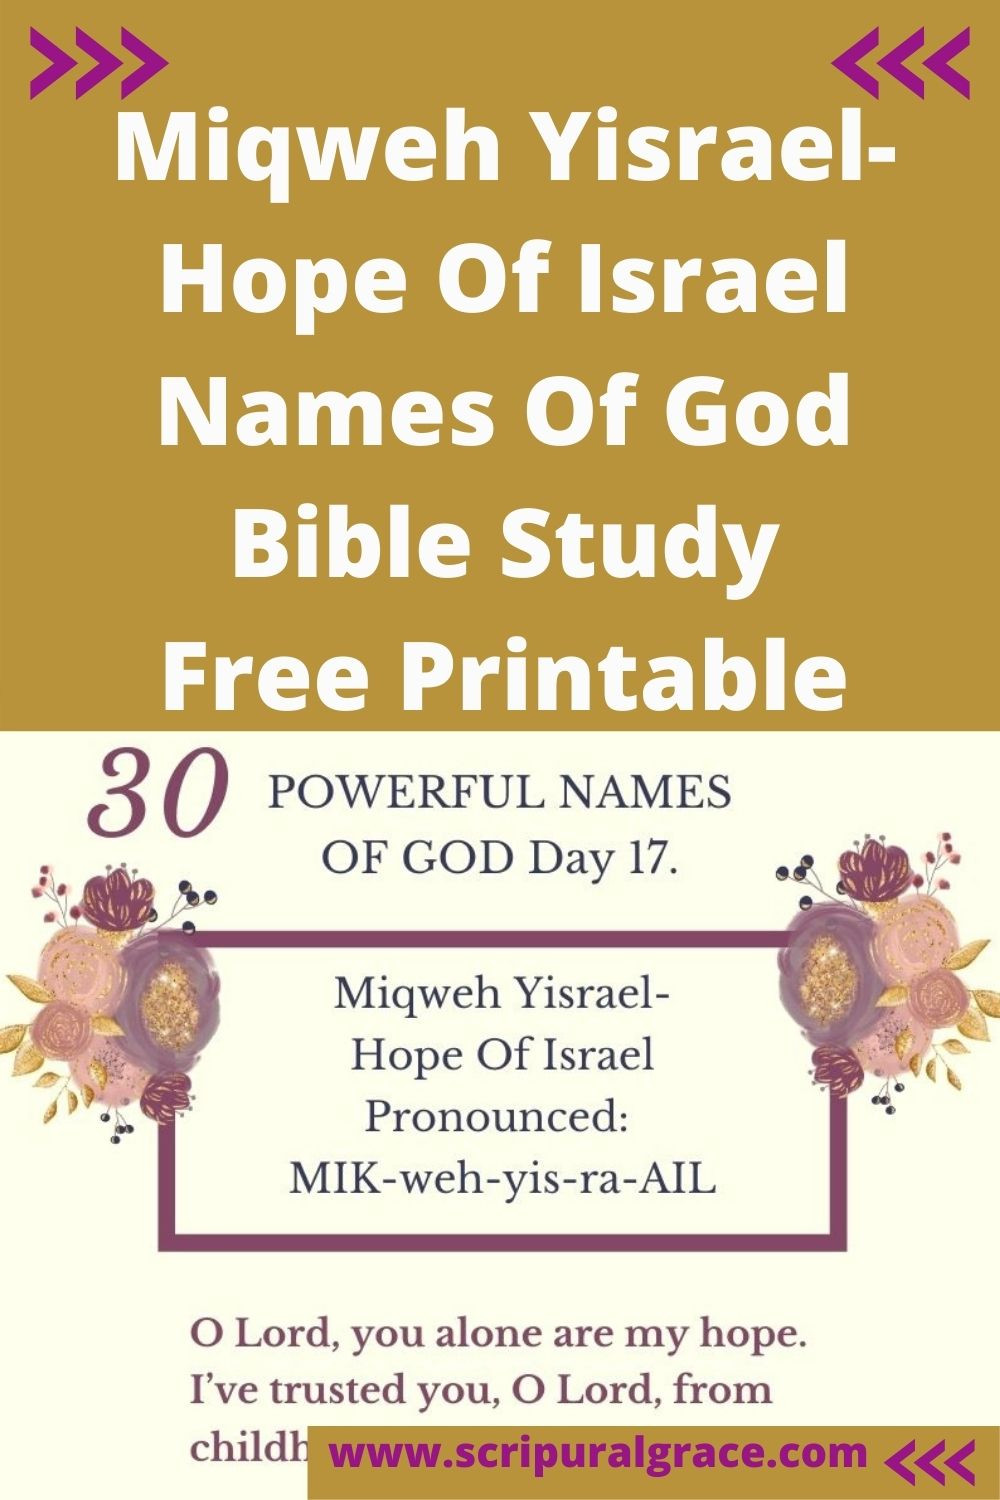 Miqweh Yisrael-Hop Of Israel names of God free printable and Bible study